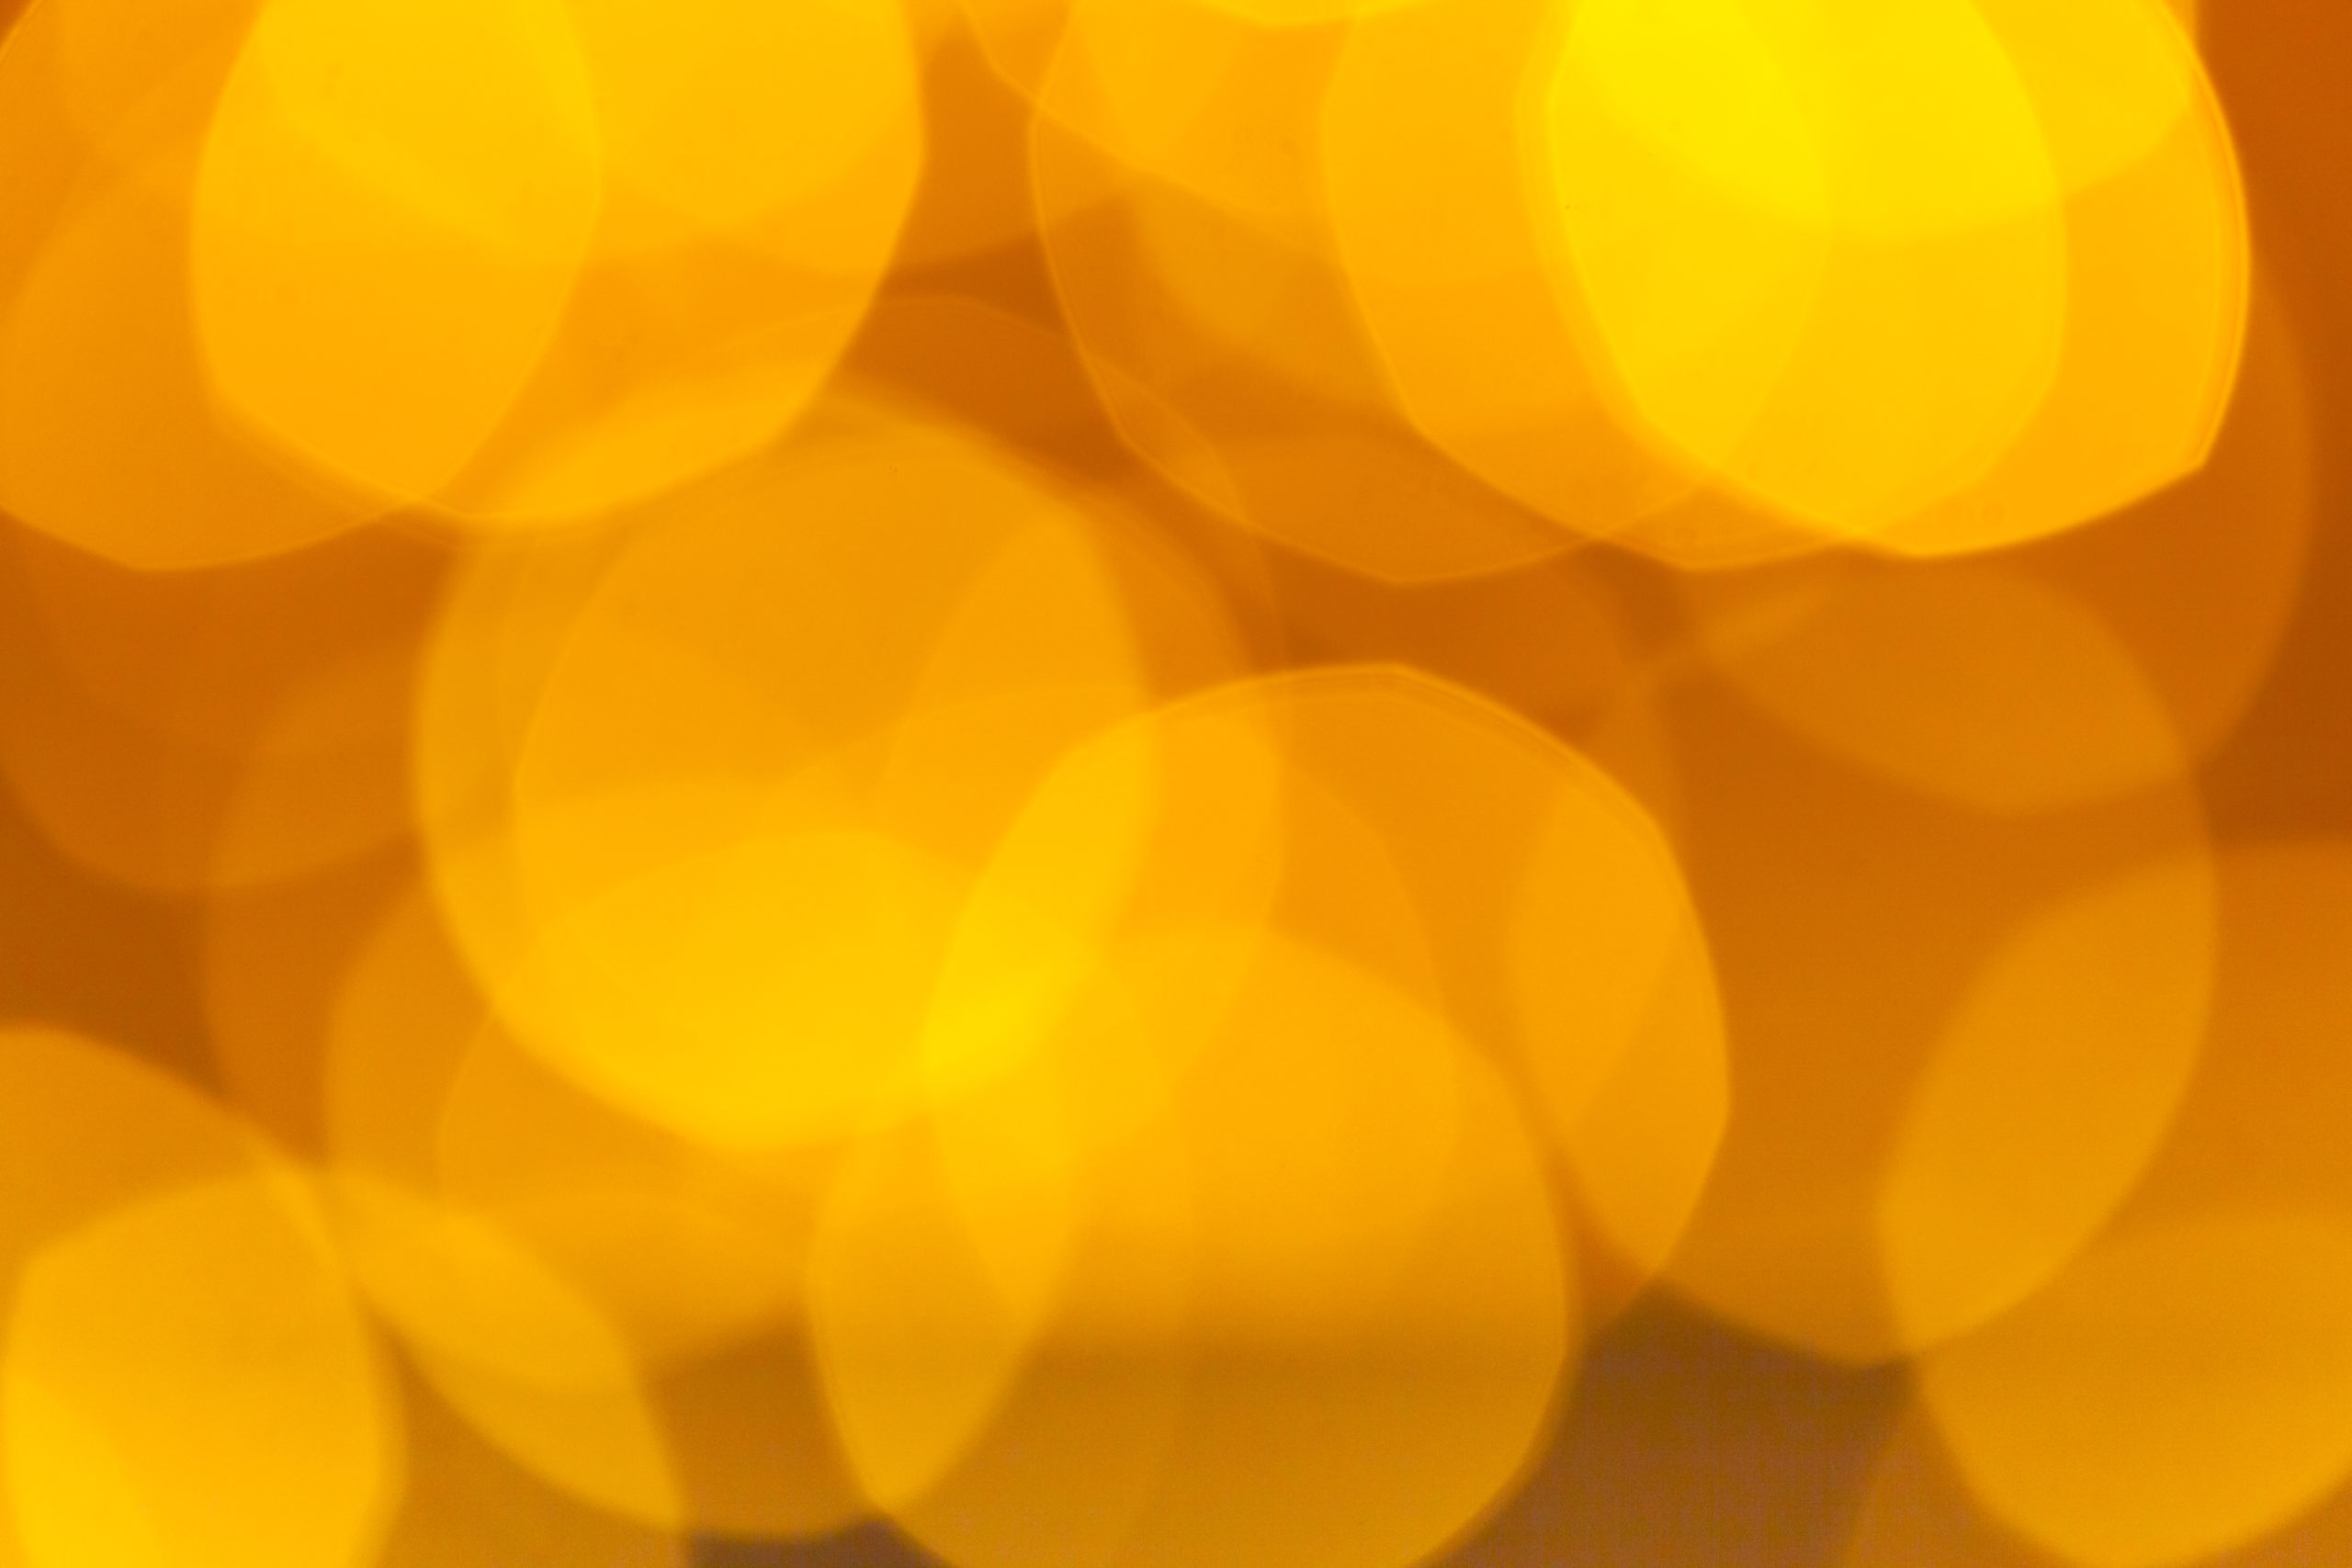 https://elements.envato.com/abstract-orange-bokeh-with-blurred-background-F4HBNC7